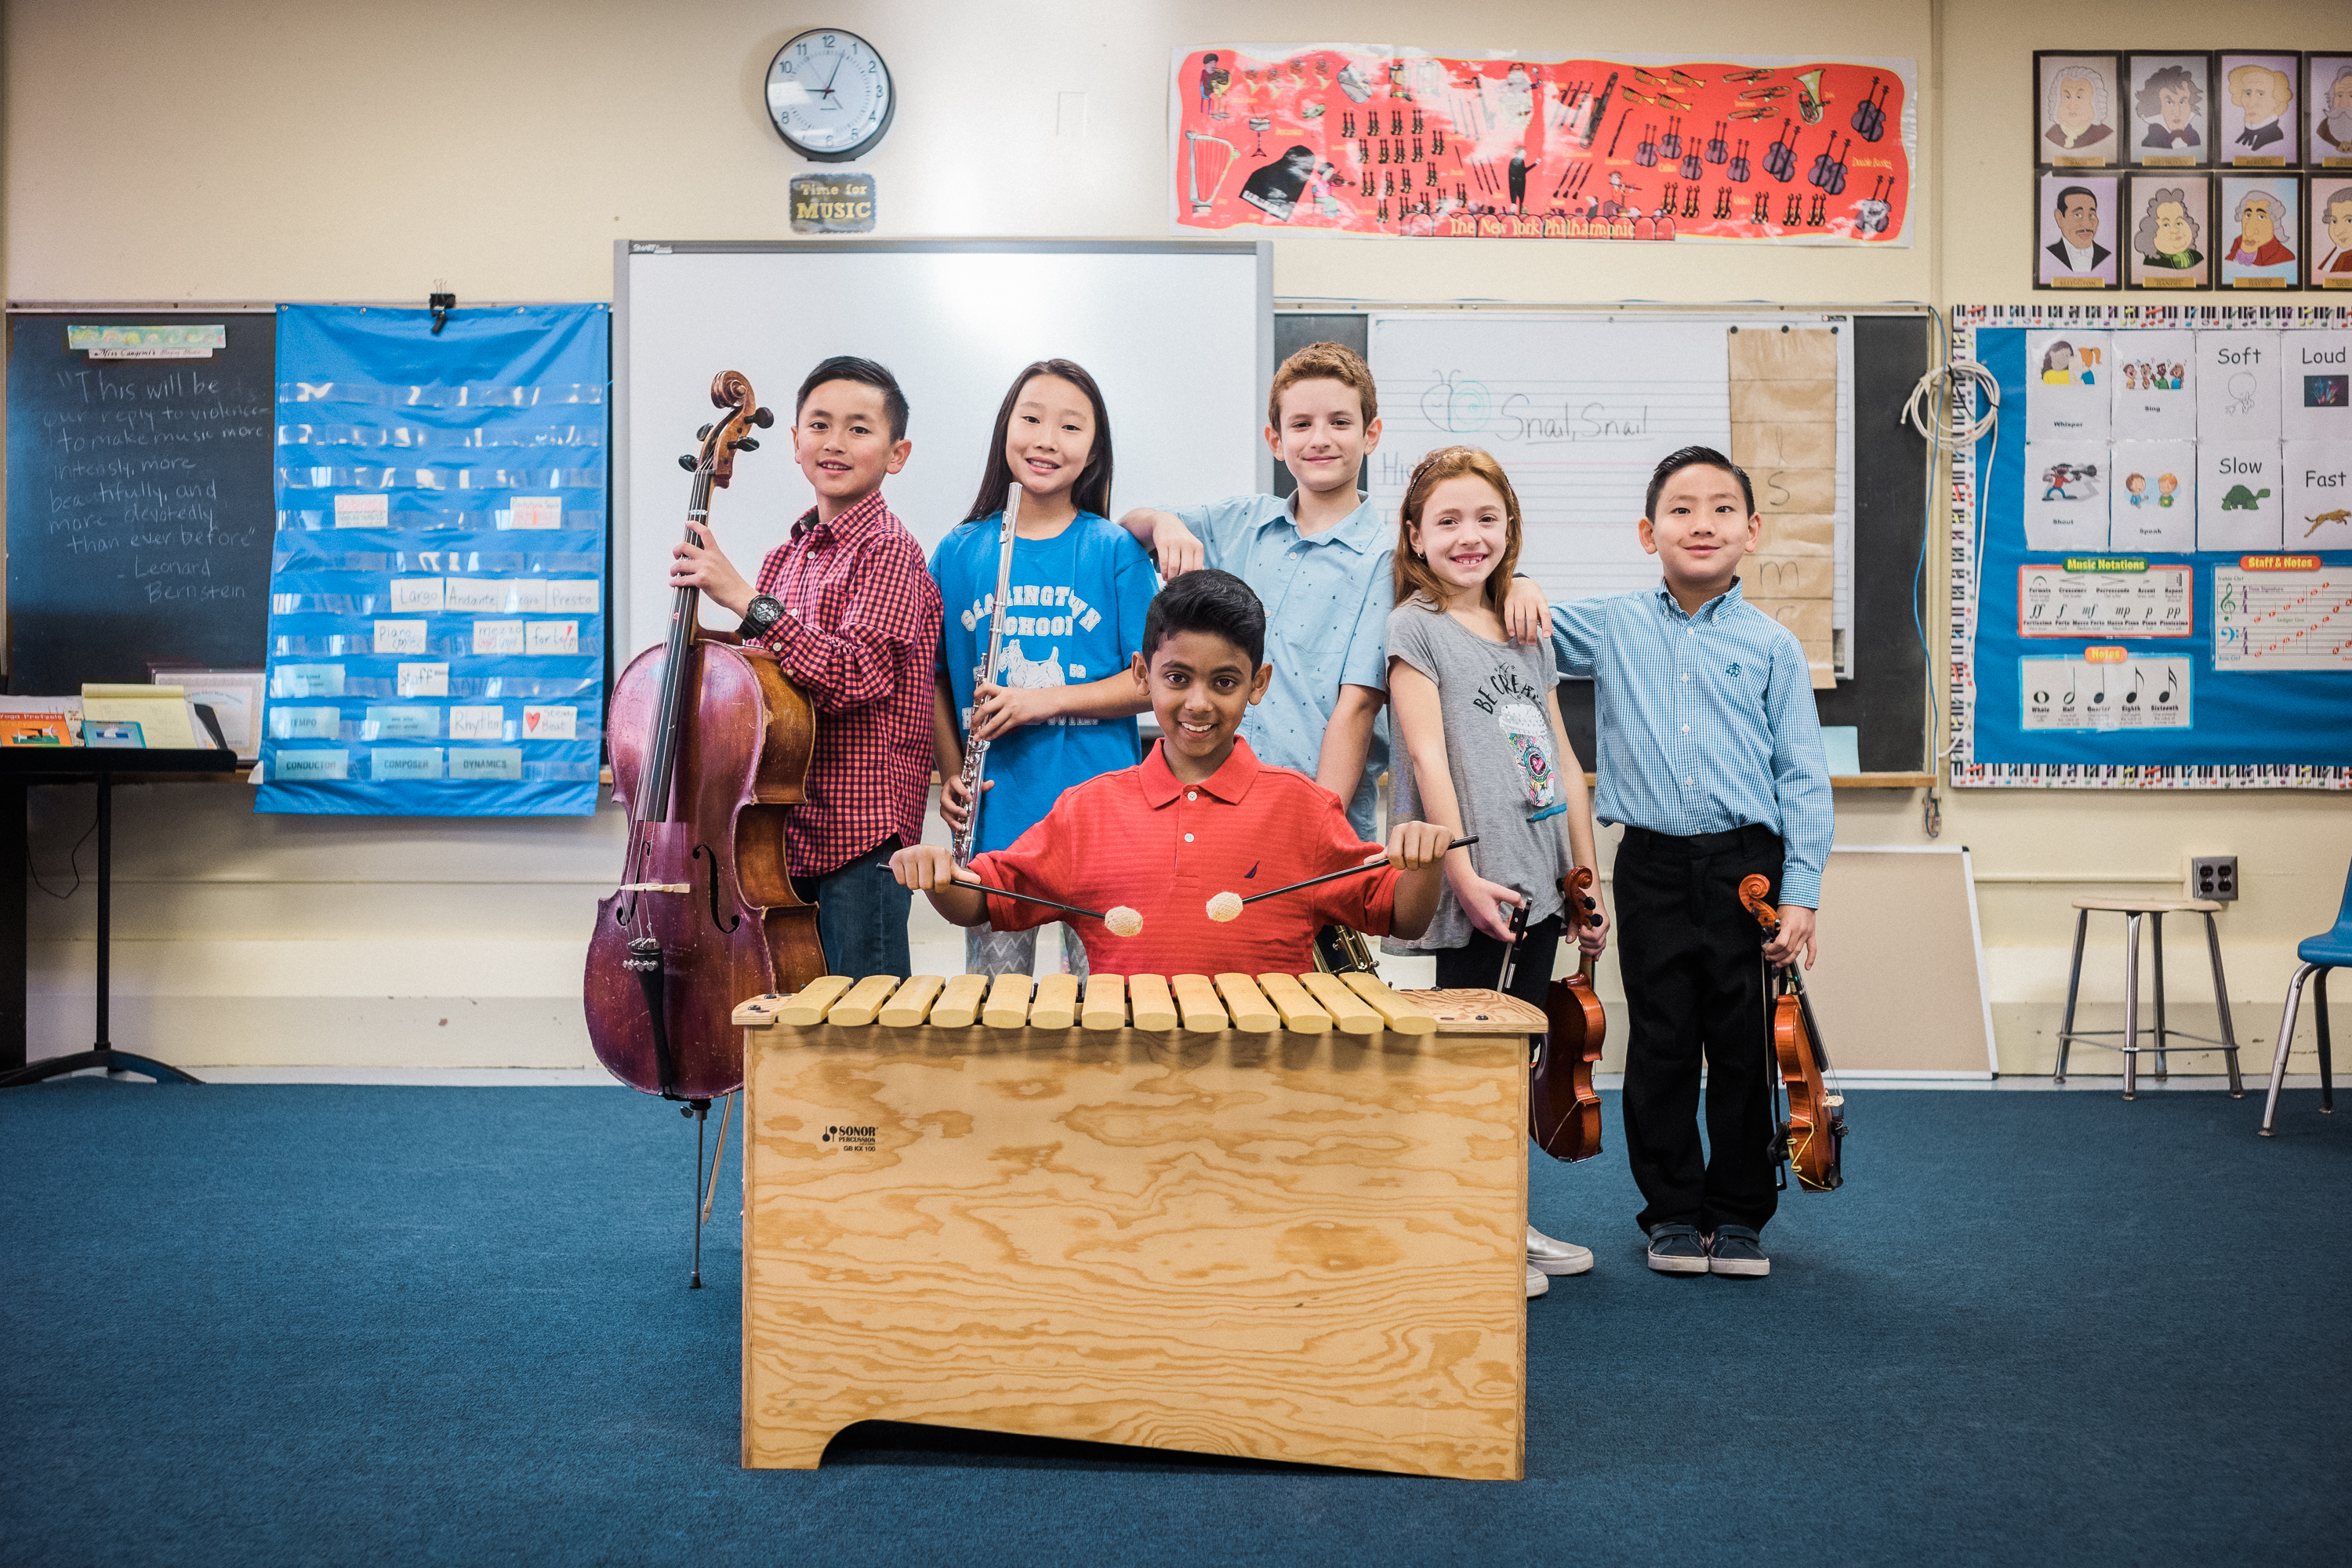 An image showing children in a music classroom reaping the benefits of music education